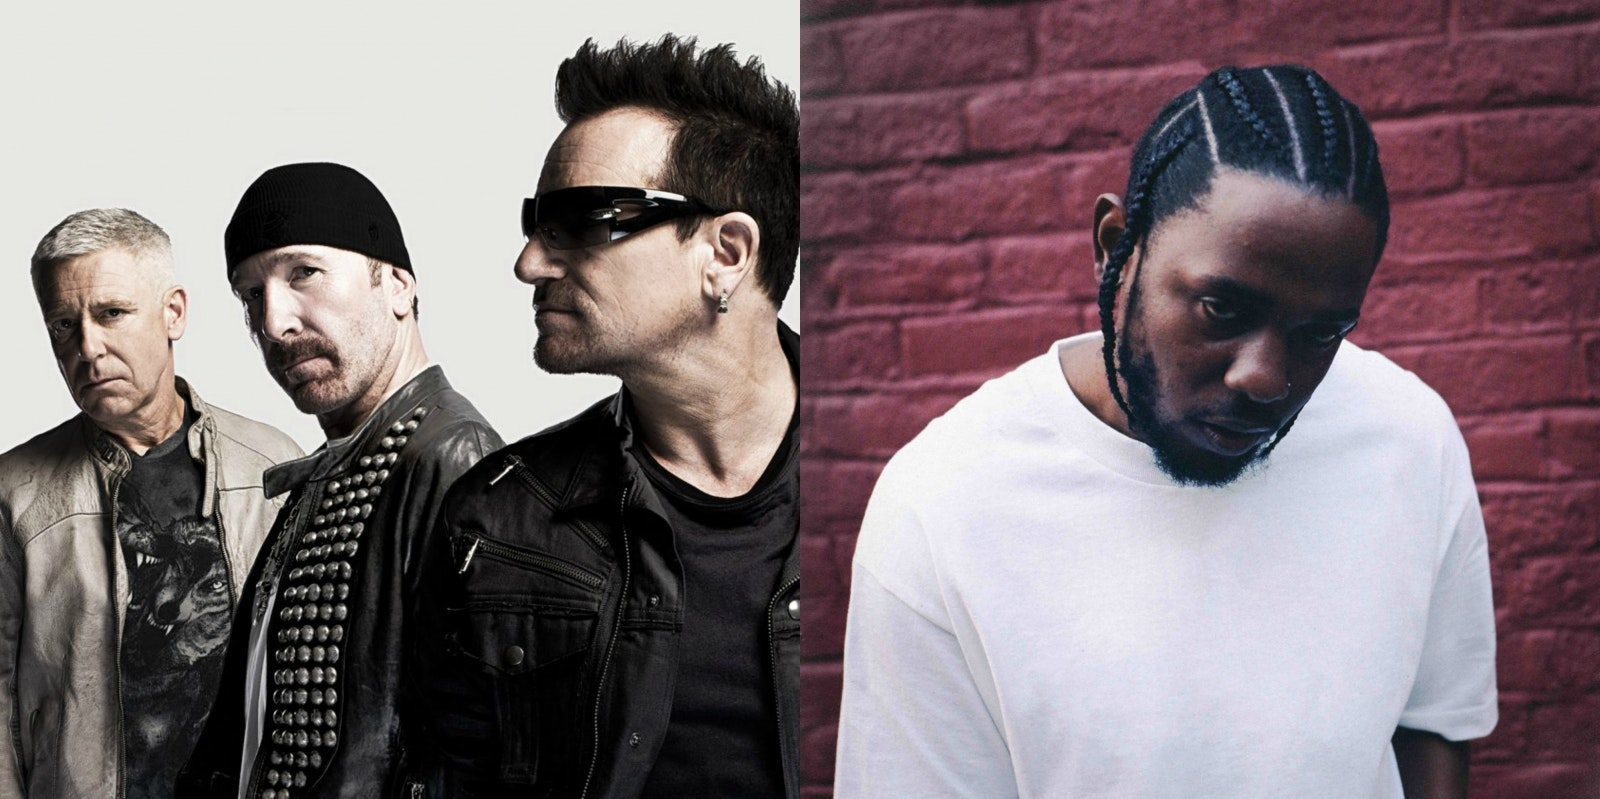 Kendrick Lamar and U2 team up for a new track